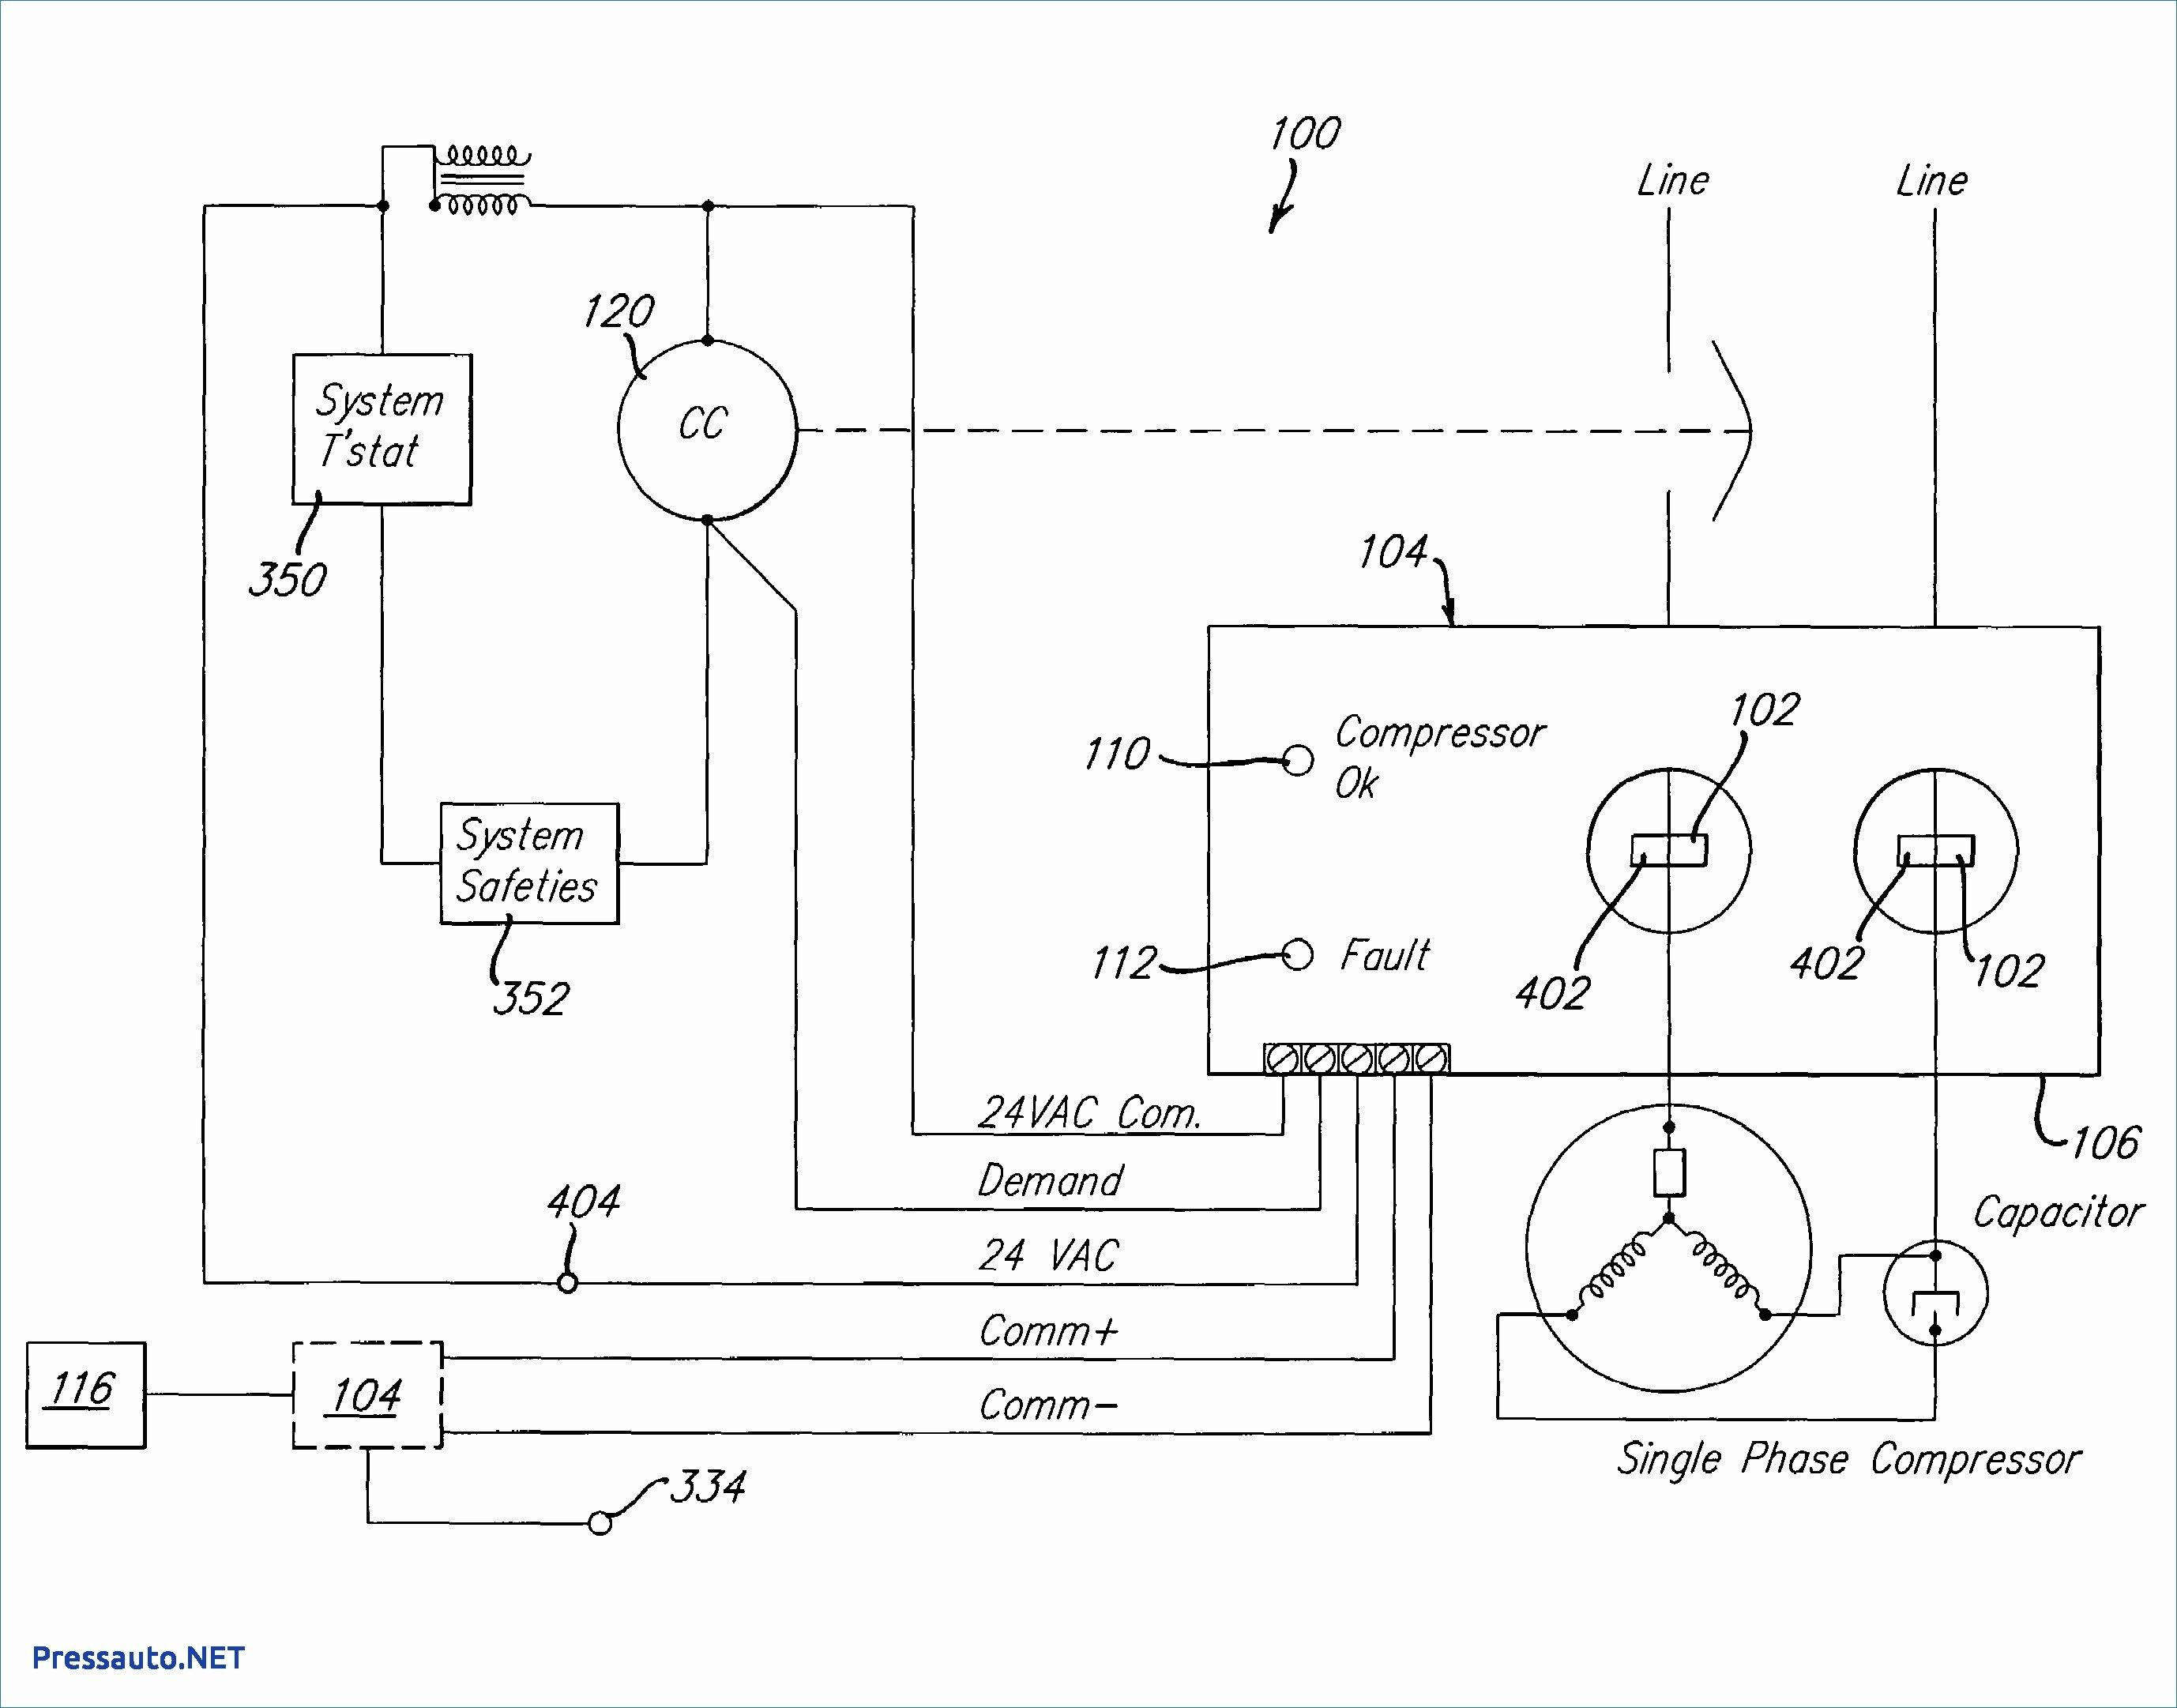 Unique Wiring Diagram For Single Phase Dol Starter Air Compressor Pressure Switch Diagram Ac Compressor